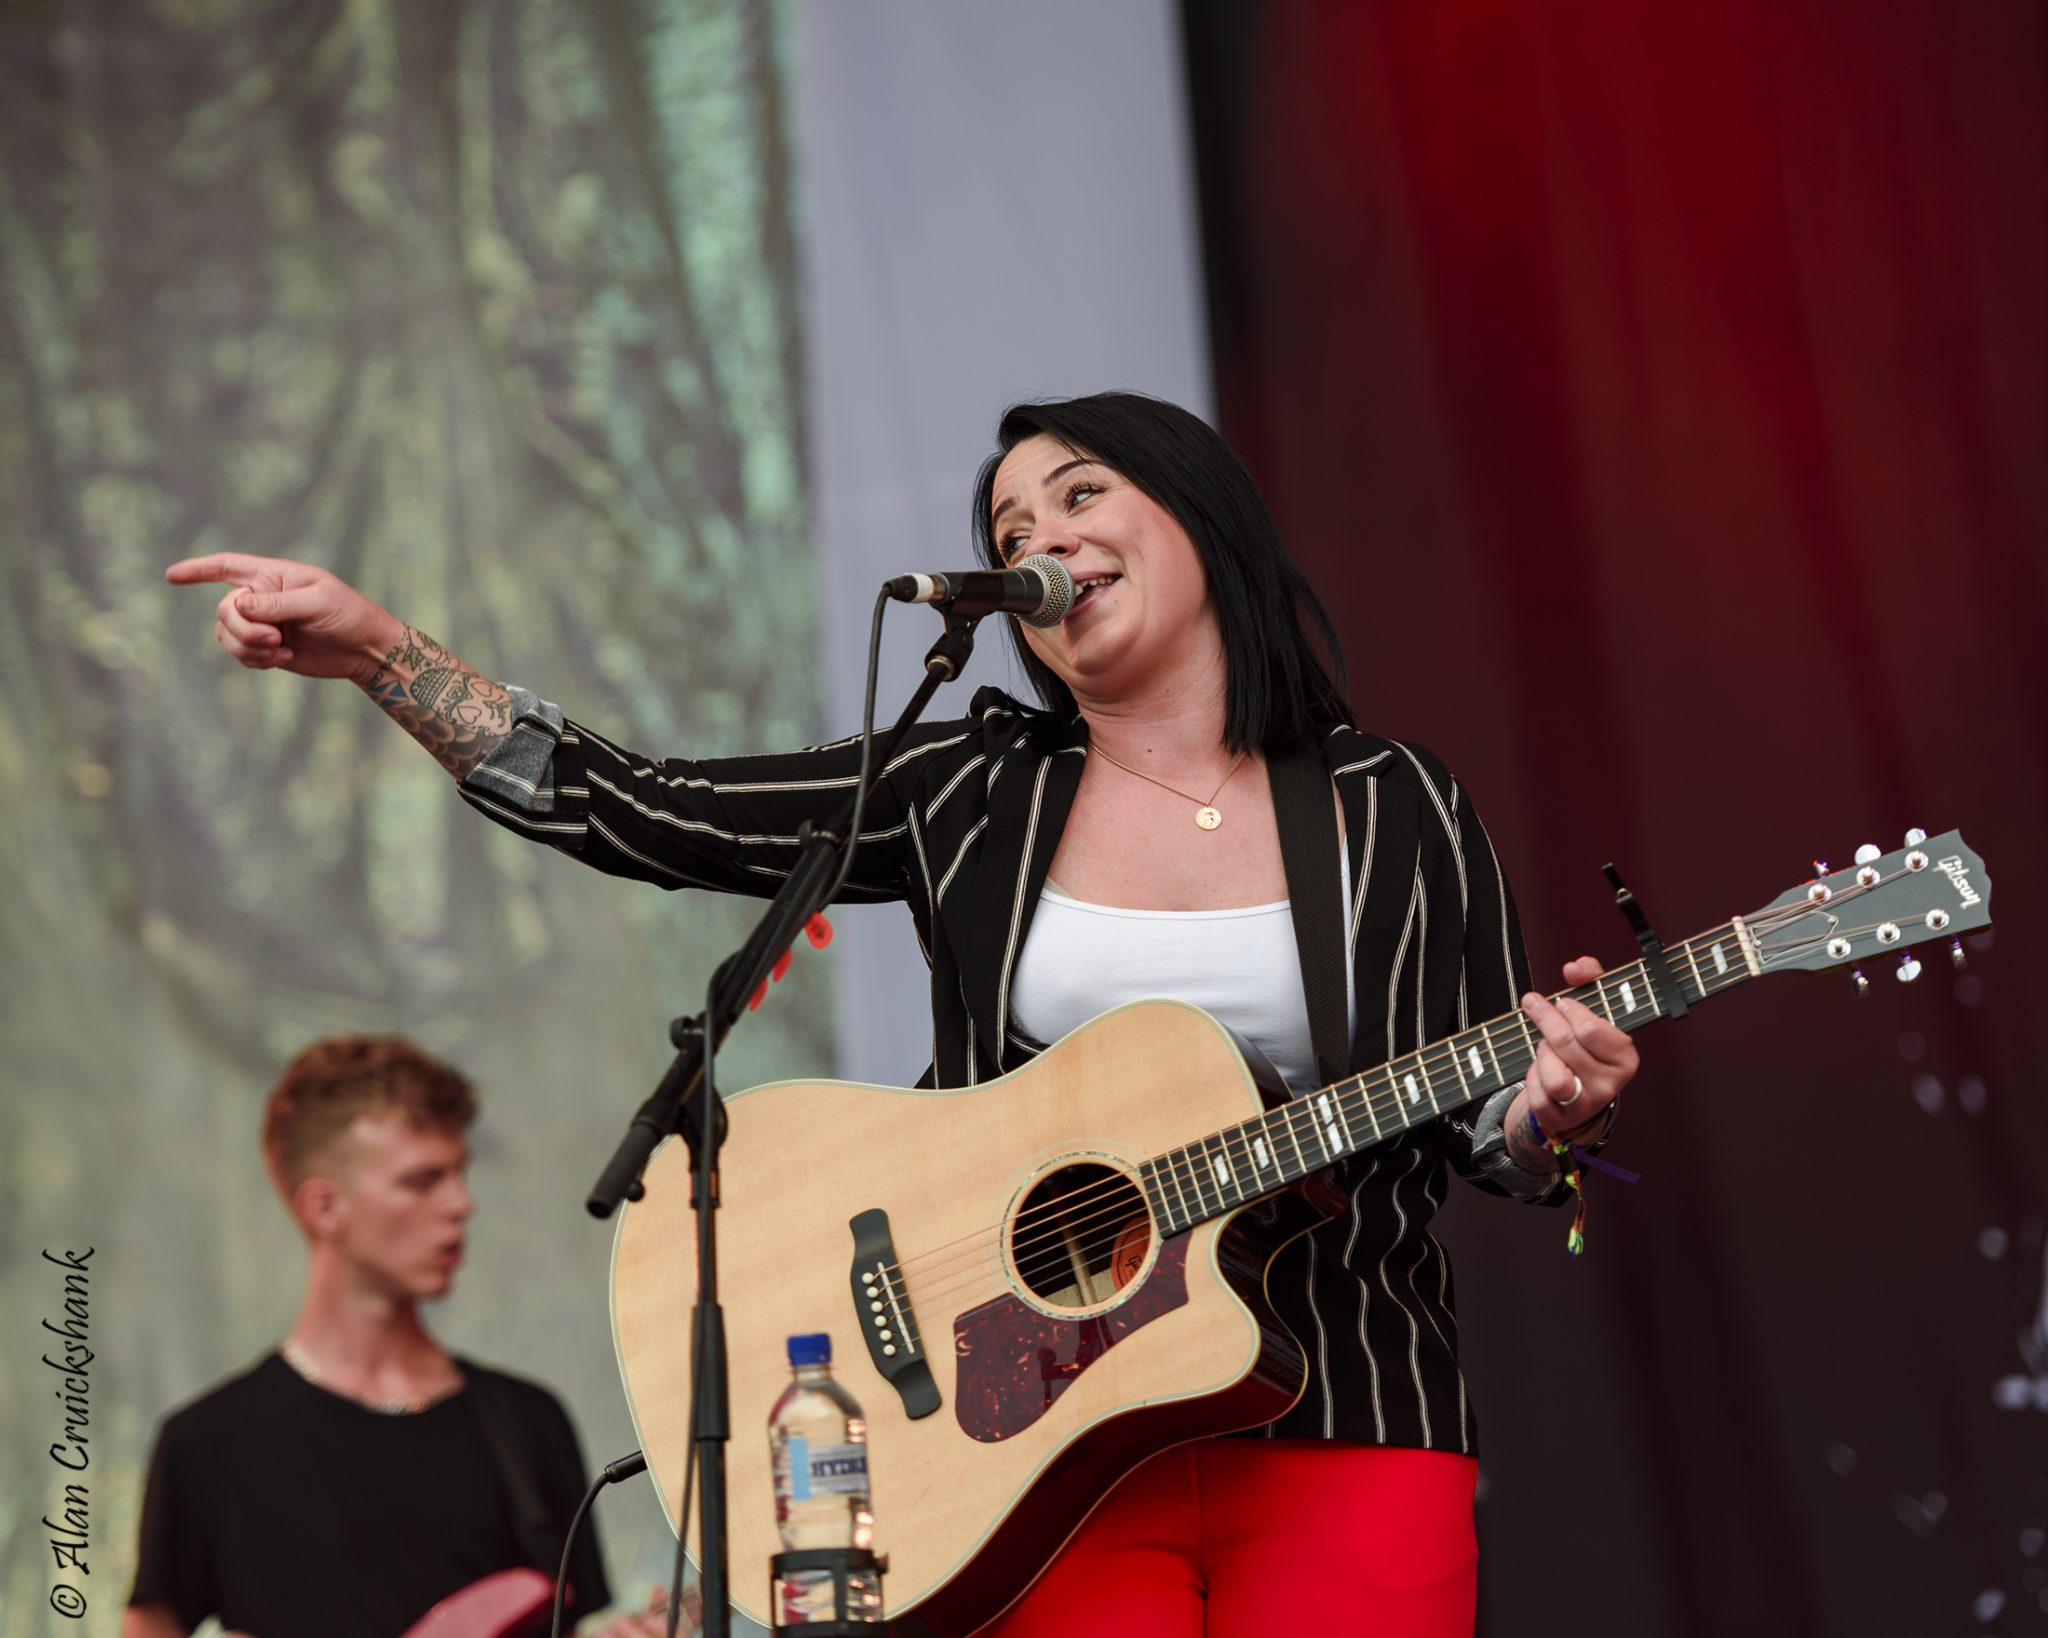 L3uWC - Lucy Spraggan Friday Belladrum 2018 - IMAGES